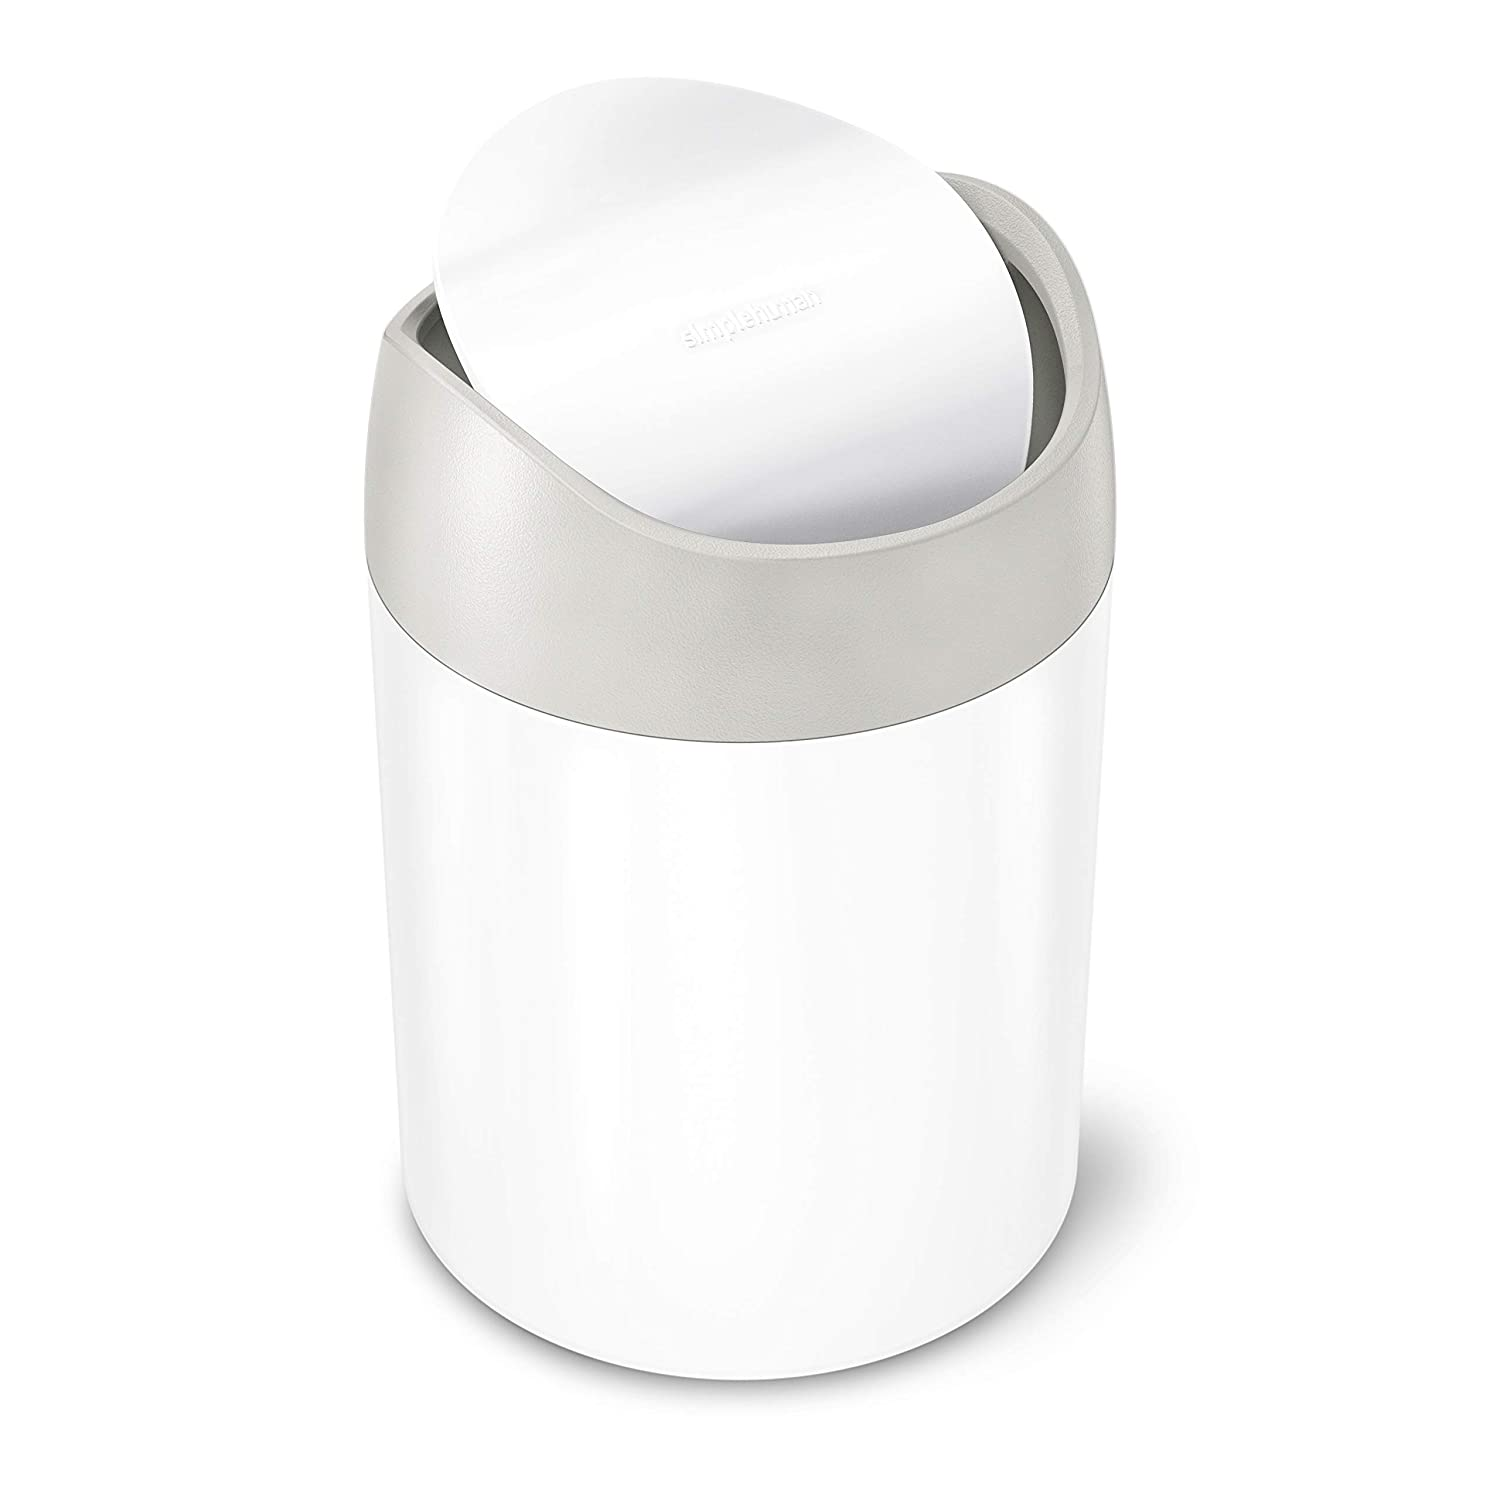 simplehuman 1.5 Litre countertop Trash can, White Stainless Steel